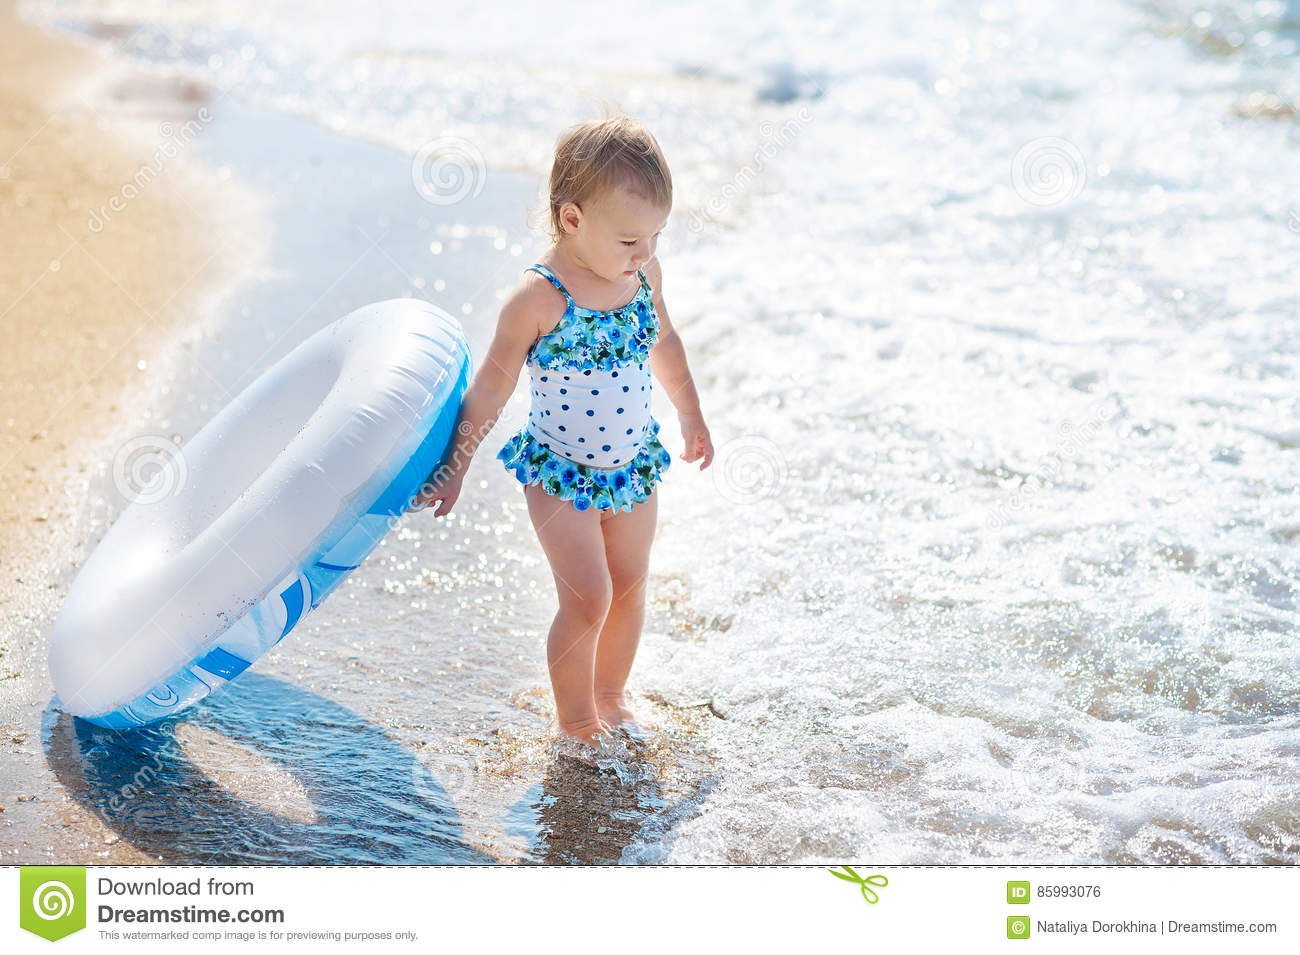 a46e42ee4431 Little girl in swim suit with swimming circle ready to go into the sea at  early sunset. Summer fun.